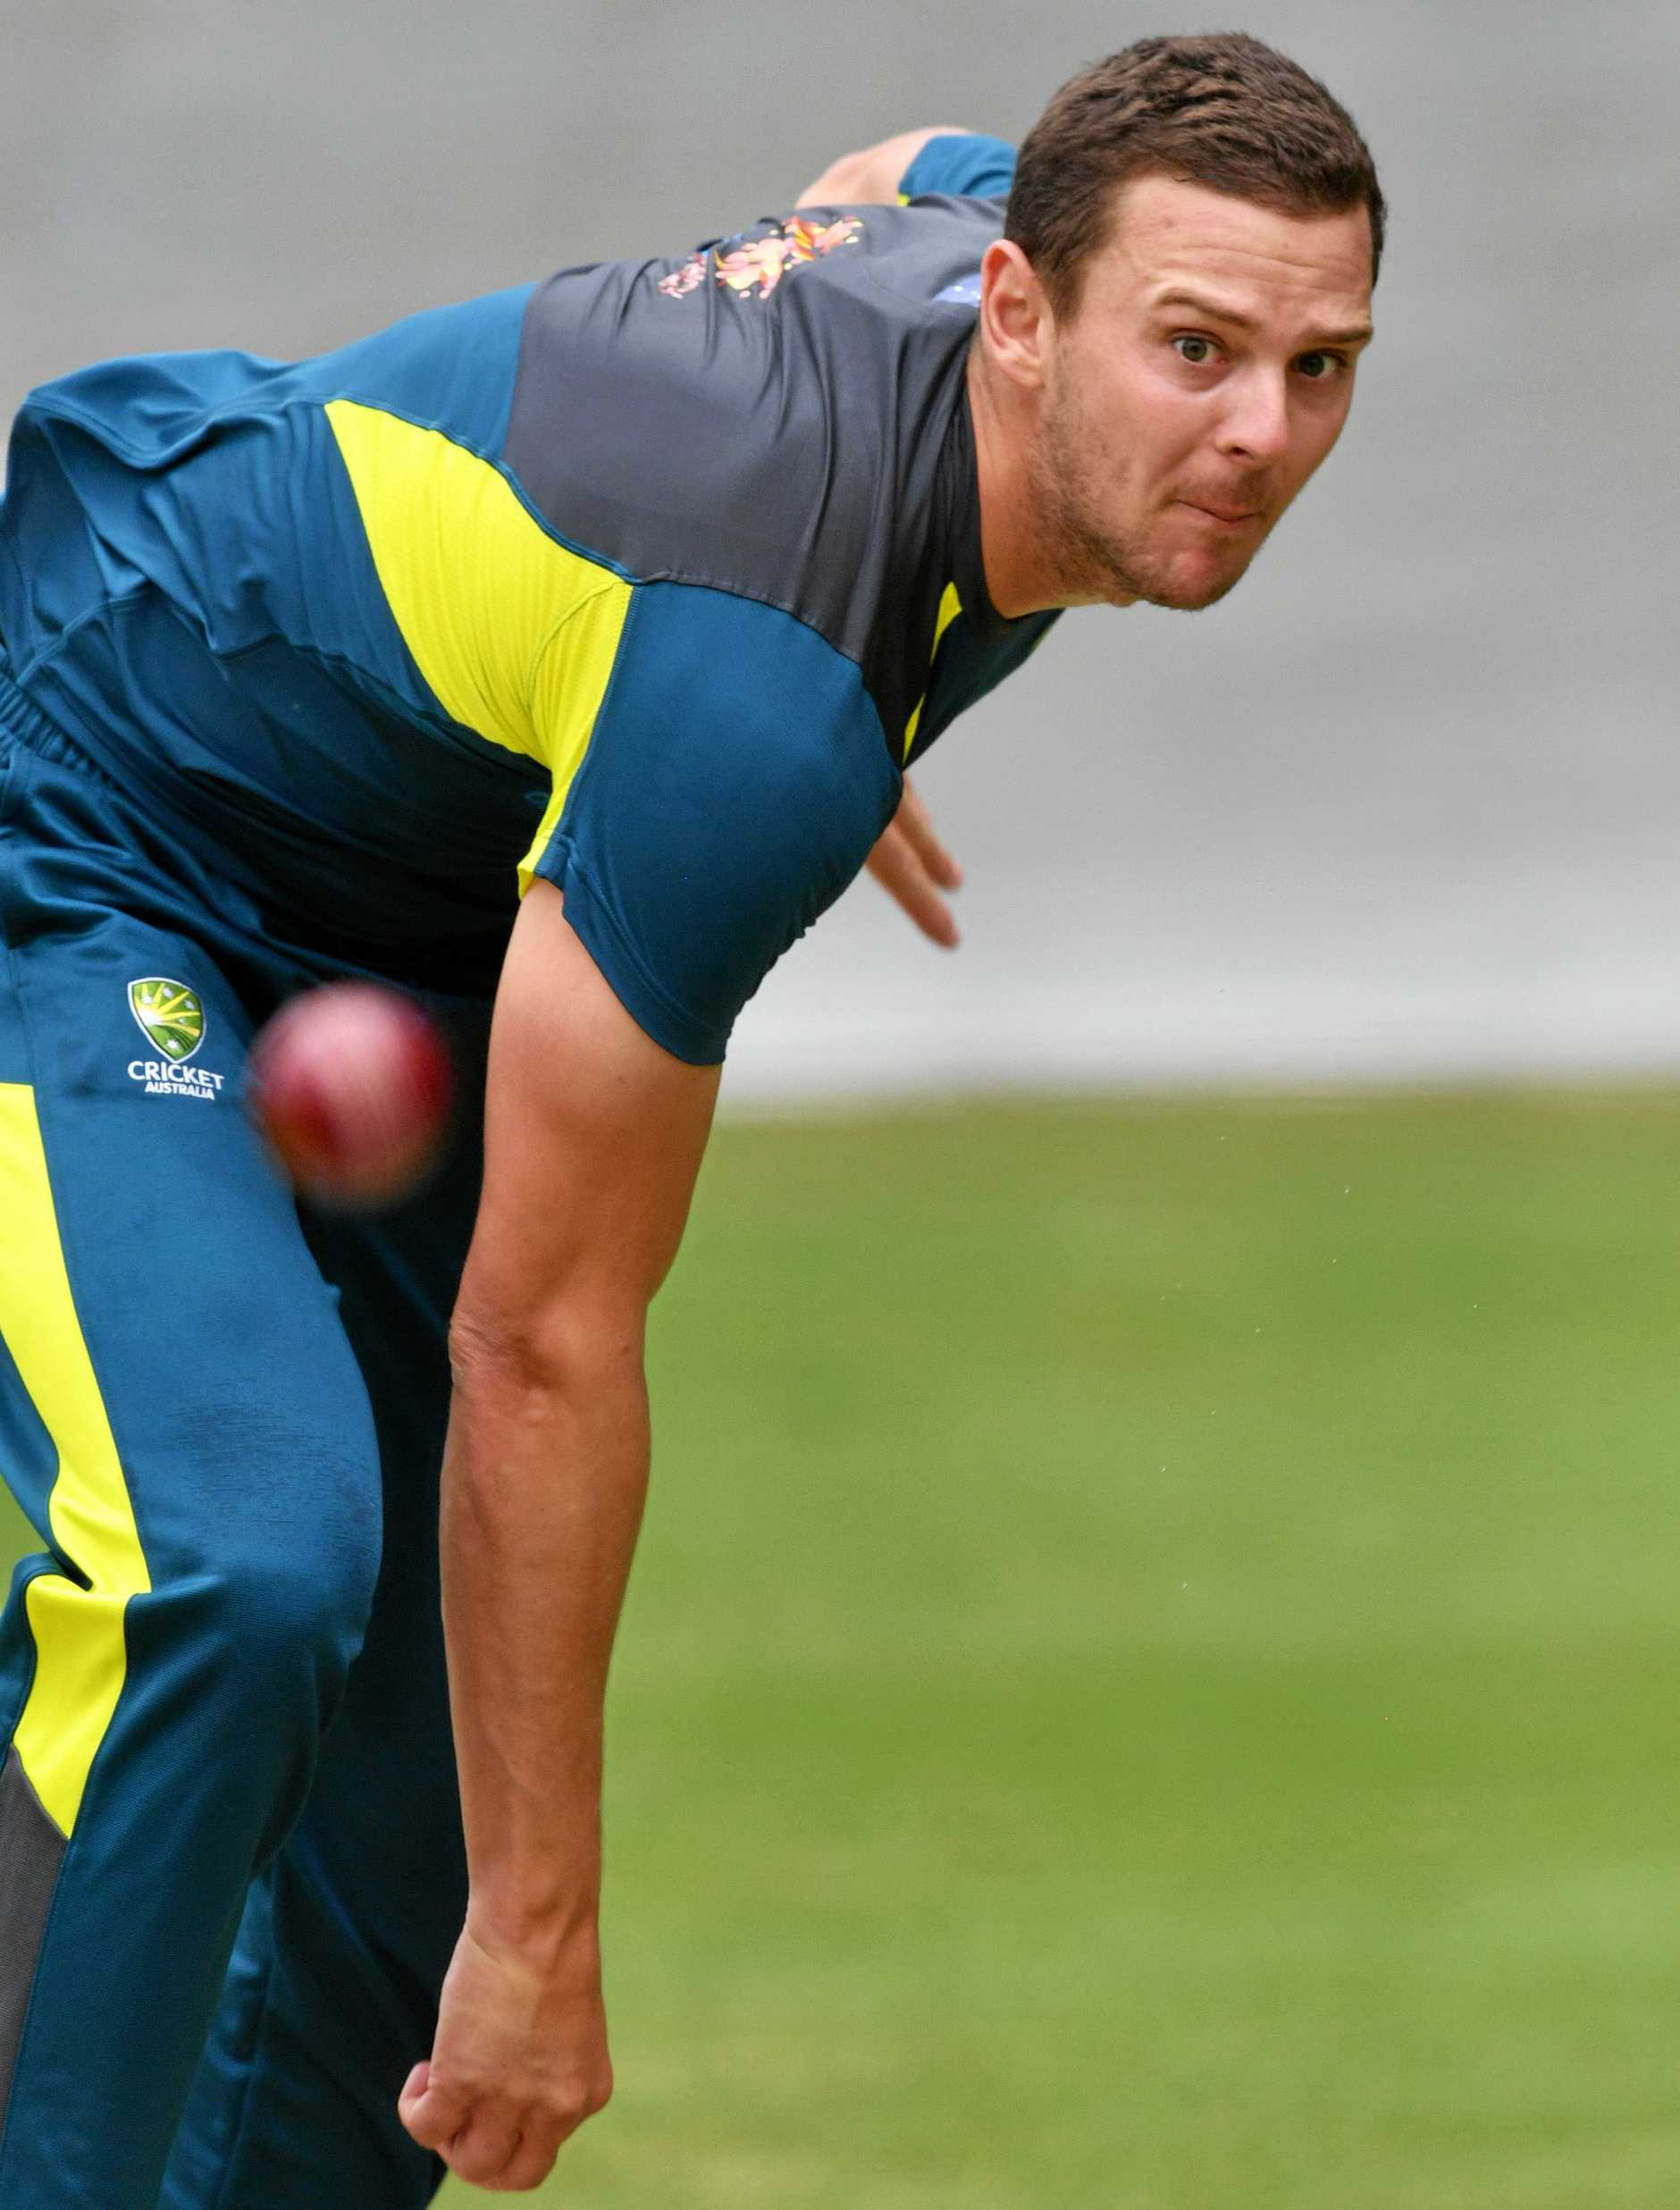 Josh Hazlewood of Australia is seen during a training session at the Adelaide Oval in Adelaide, Tuesday, December 4, 2018. Australia play India in the first test starting this Thursday. (AAP Image/David Mariuz) NO ARCHIVING, EDITORIAL USE ONLY